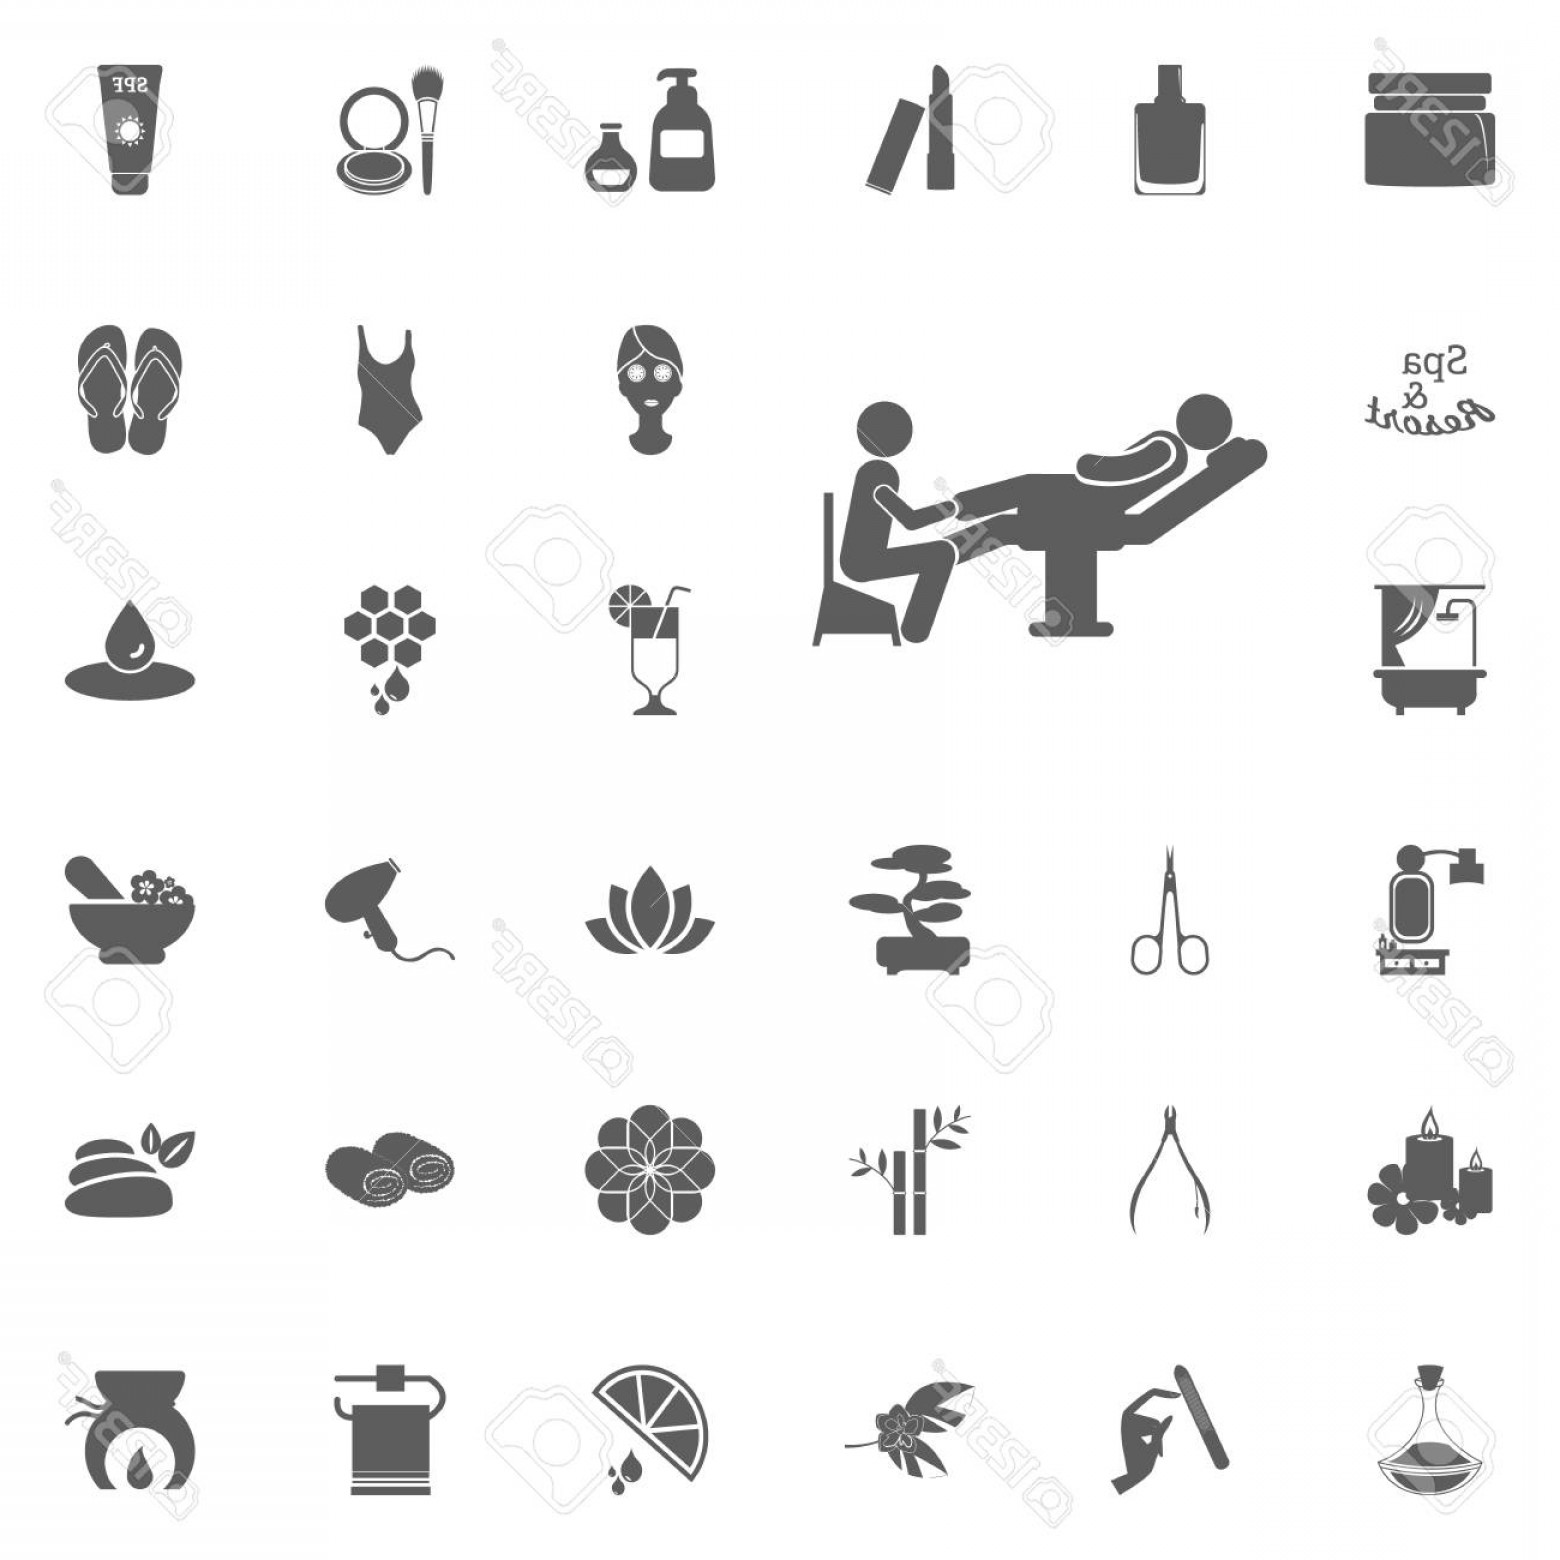 33 Rifle Vector: Photostock Vector Pedicure Icon Spa And Recreation Vector Set Icons Set Of Spa Icons